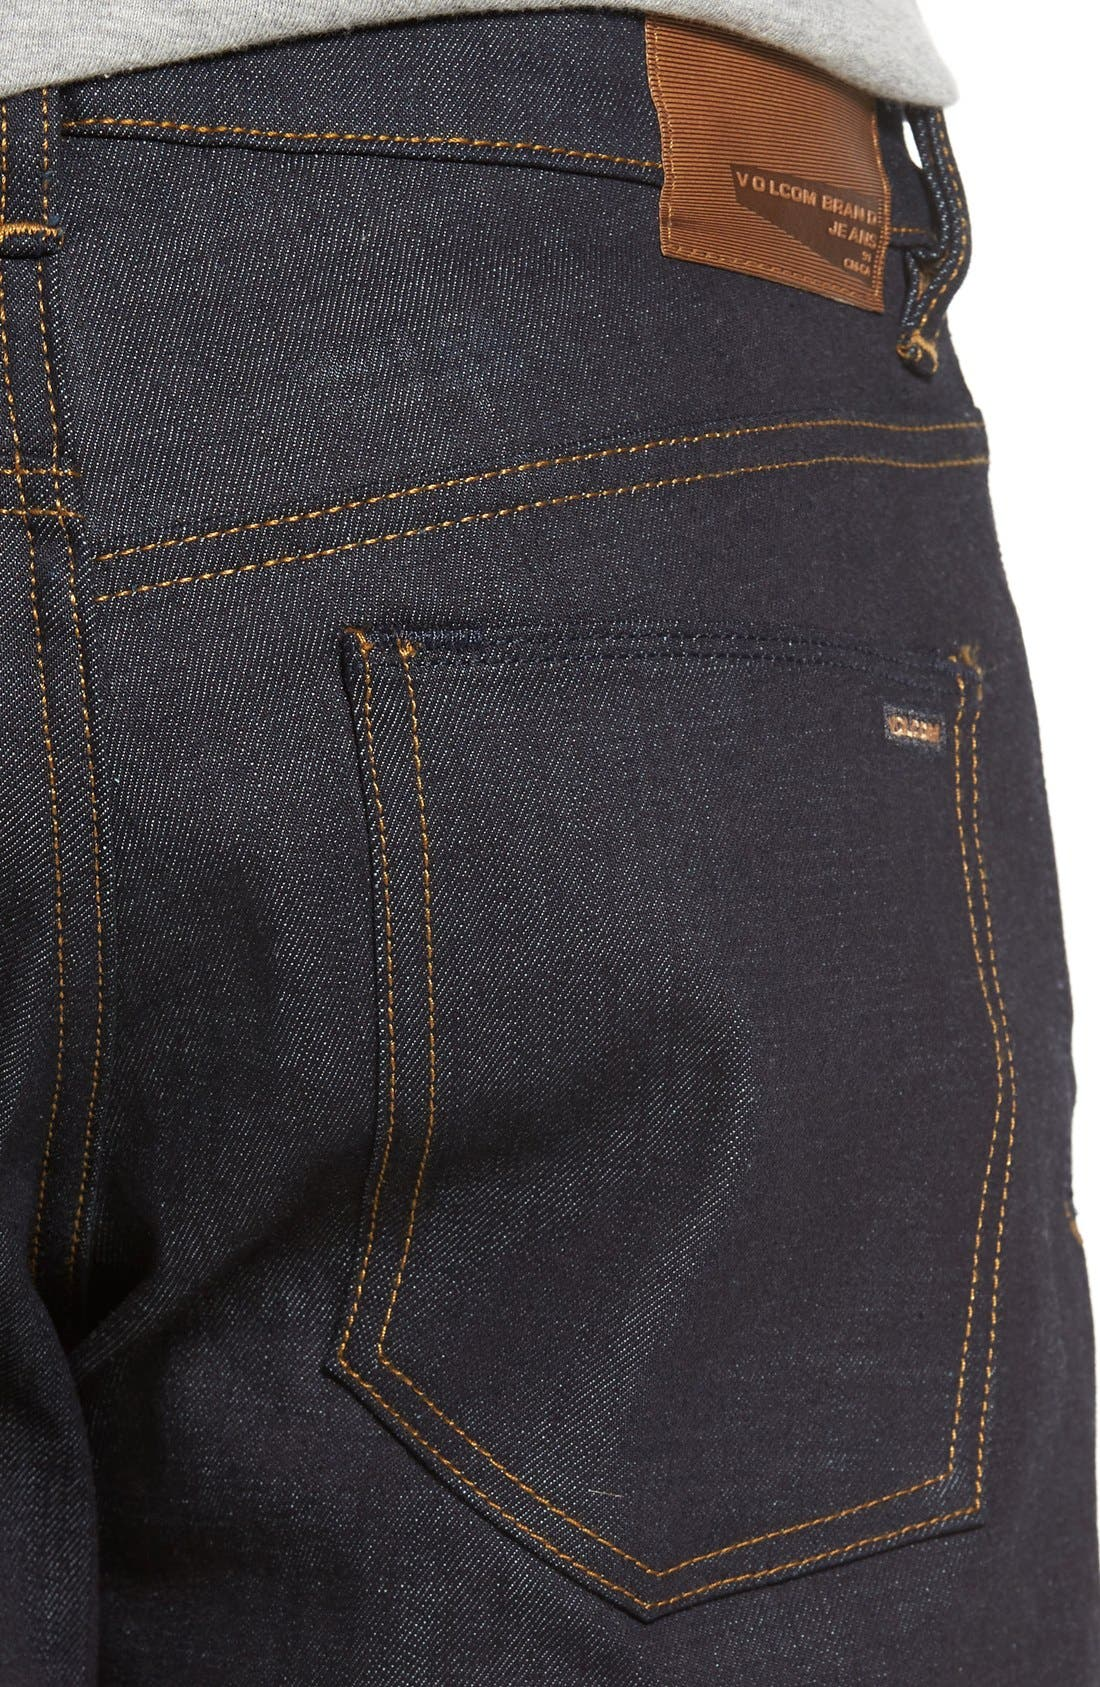 'Solver' Tapered Jeans,                             Alternate thumbnail 12, color,